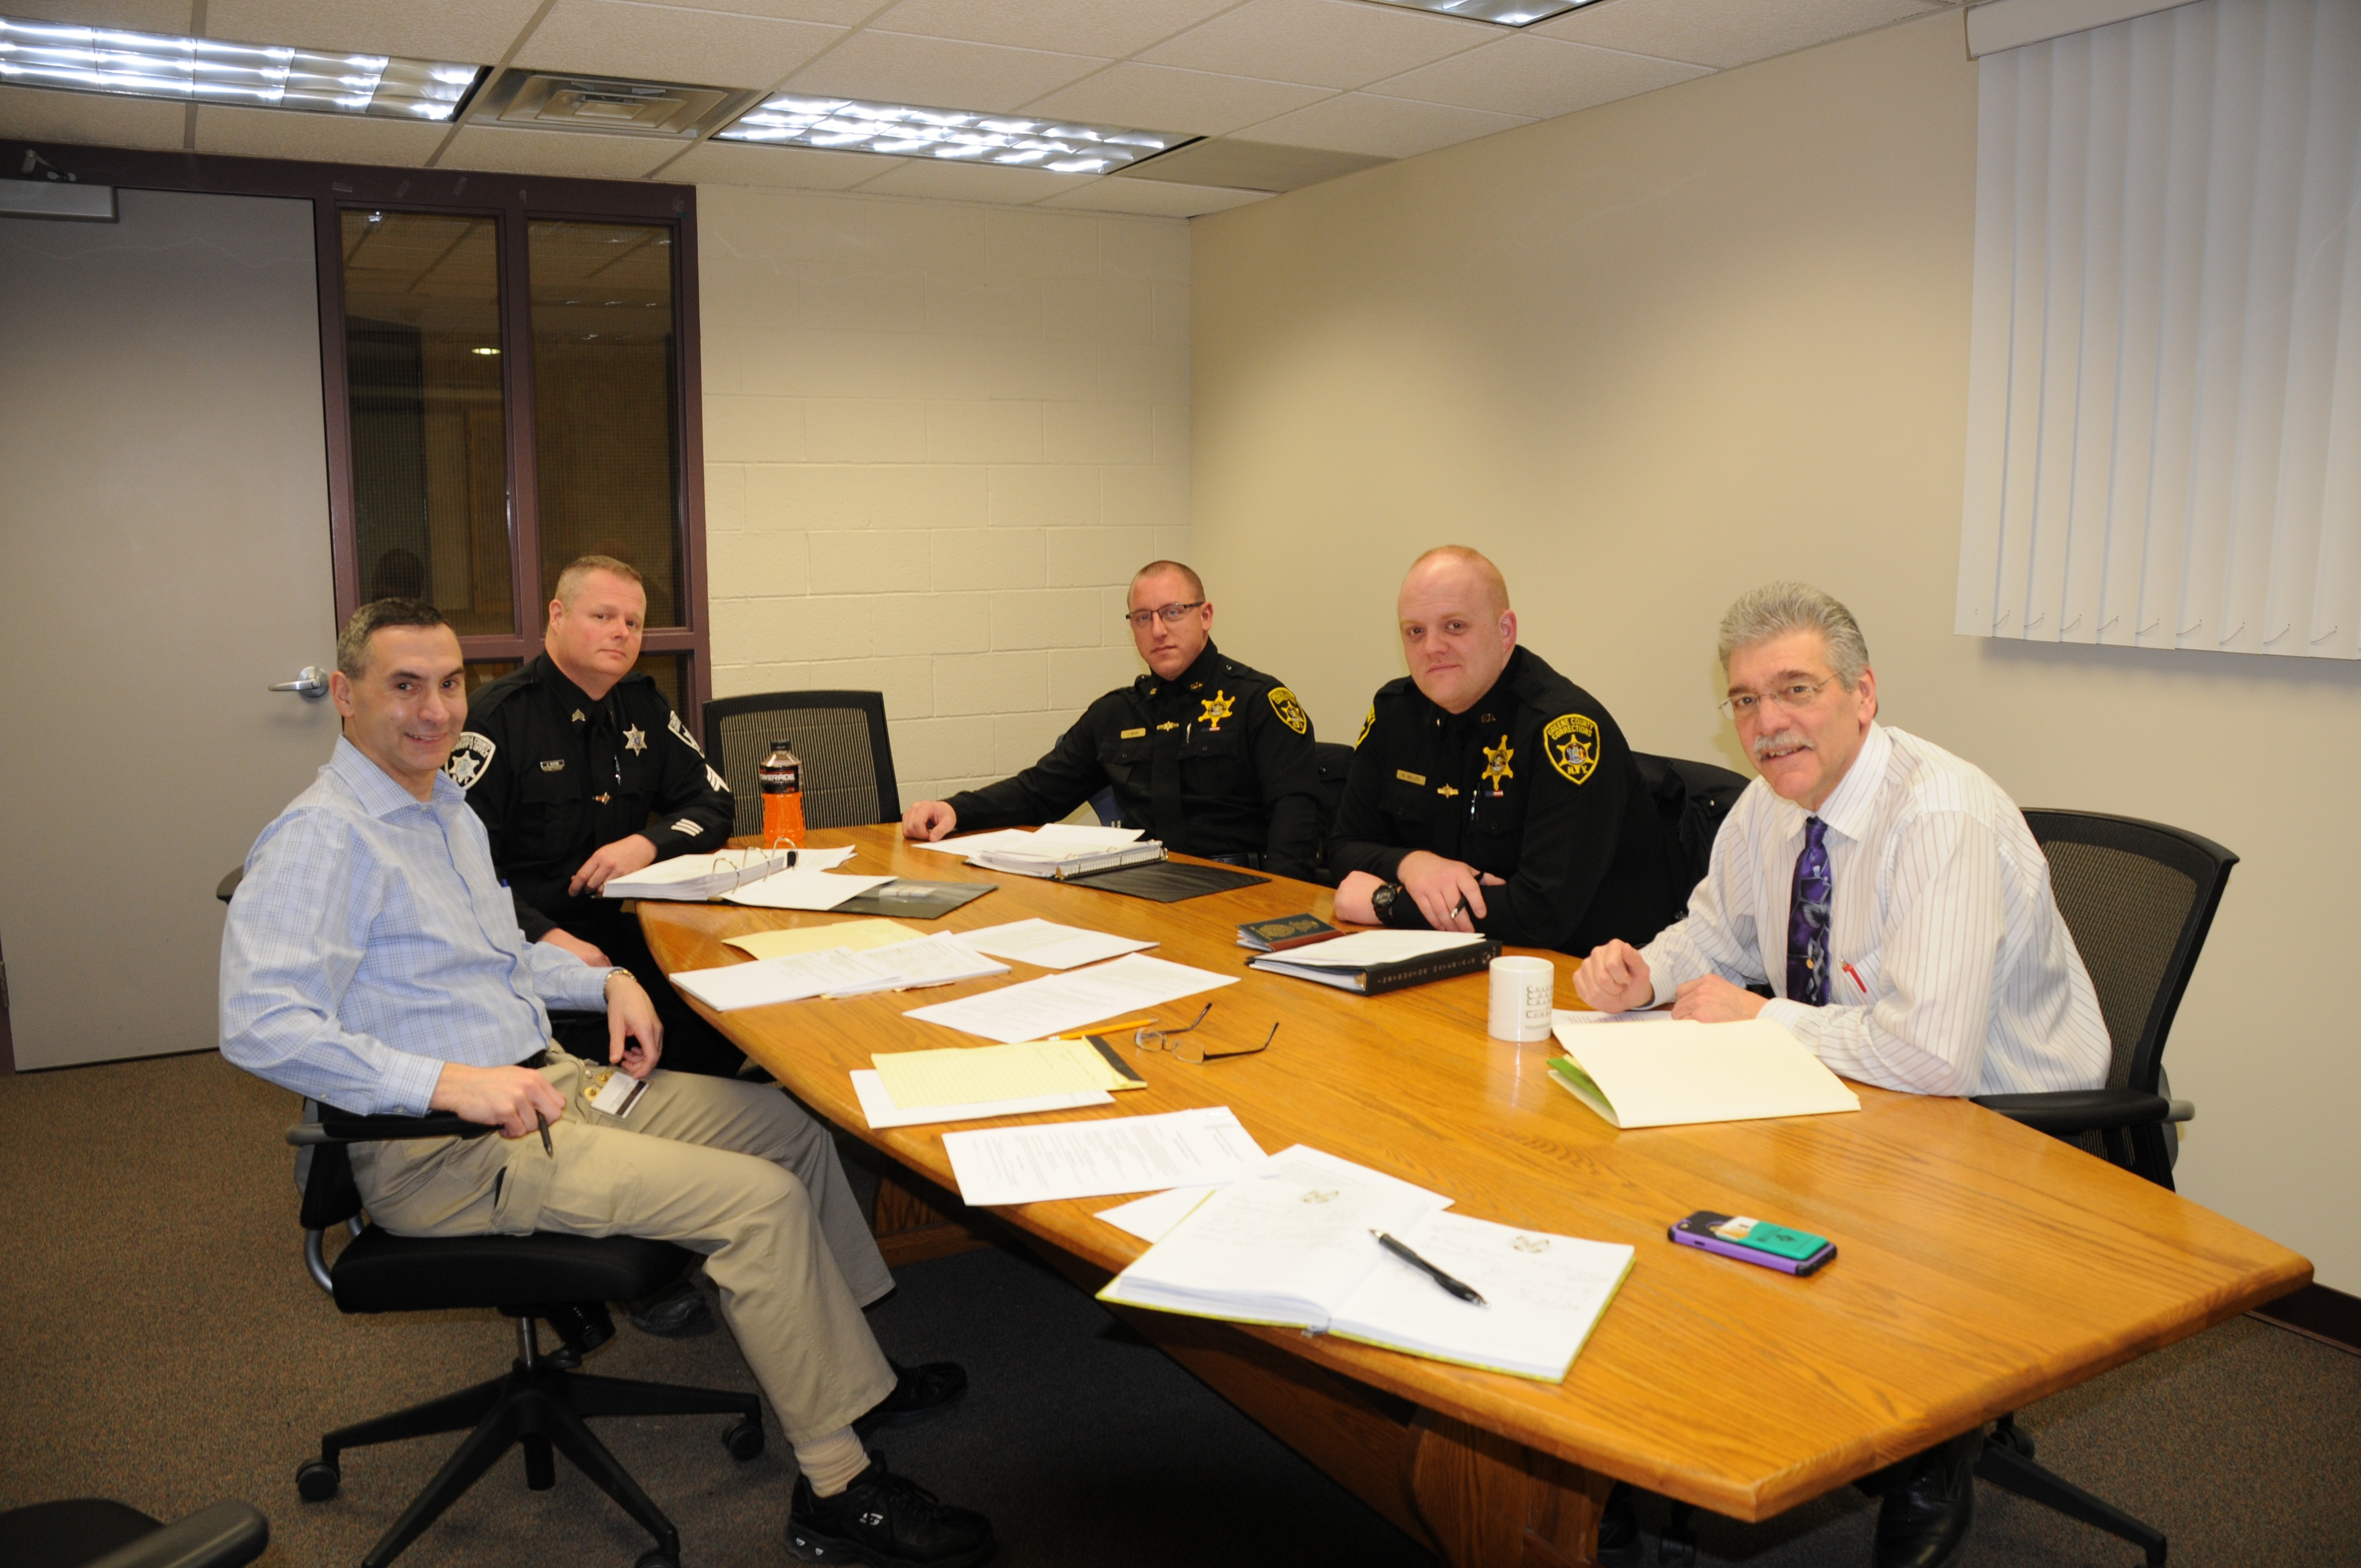 Three corrections officers and two professors at a table